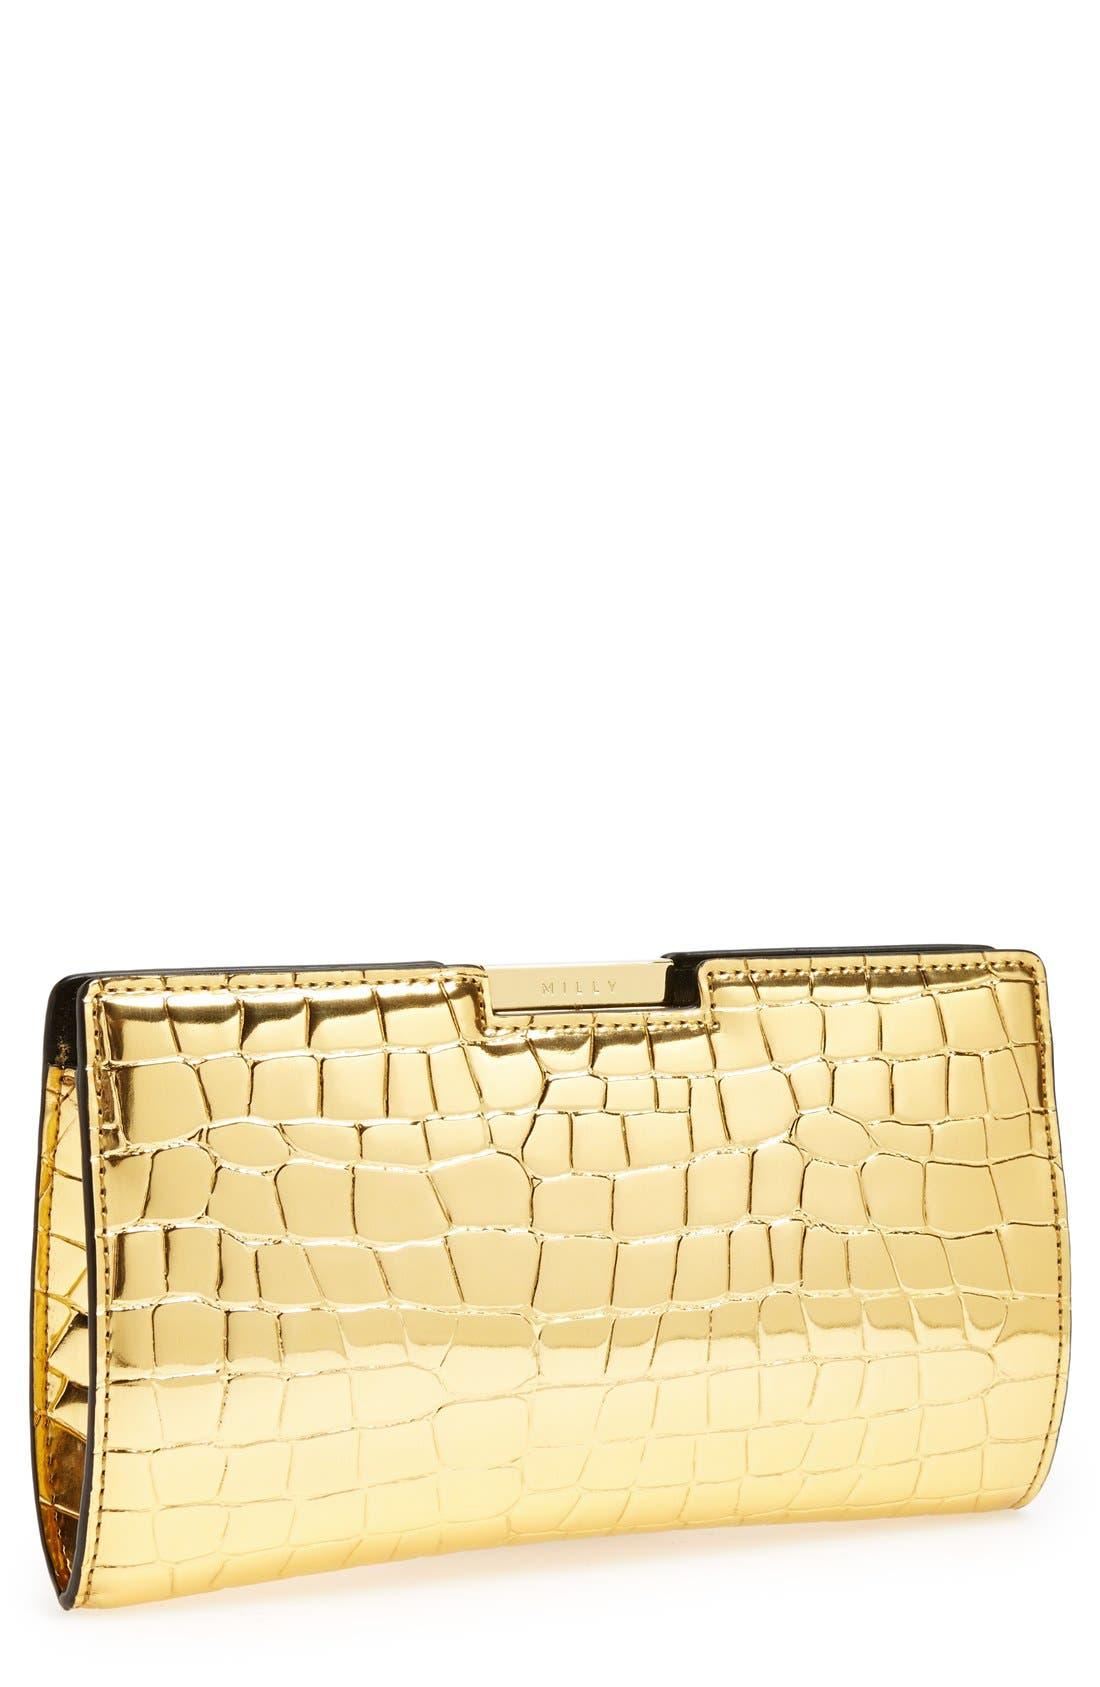 Main Image - Milly Croc Embossed Frame Clutch